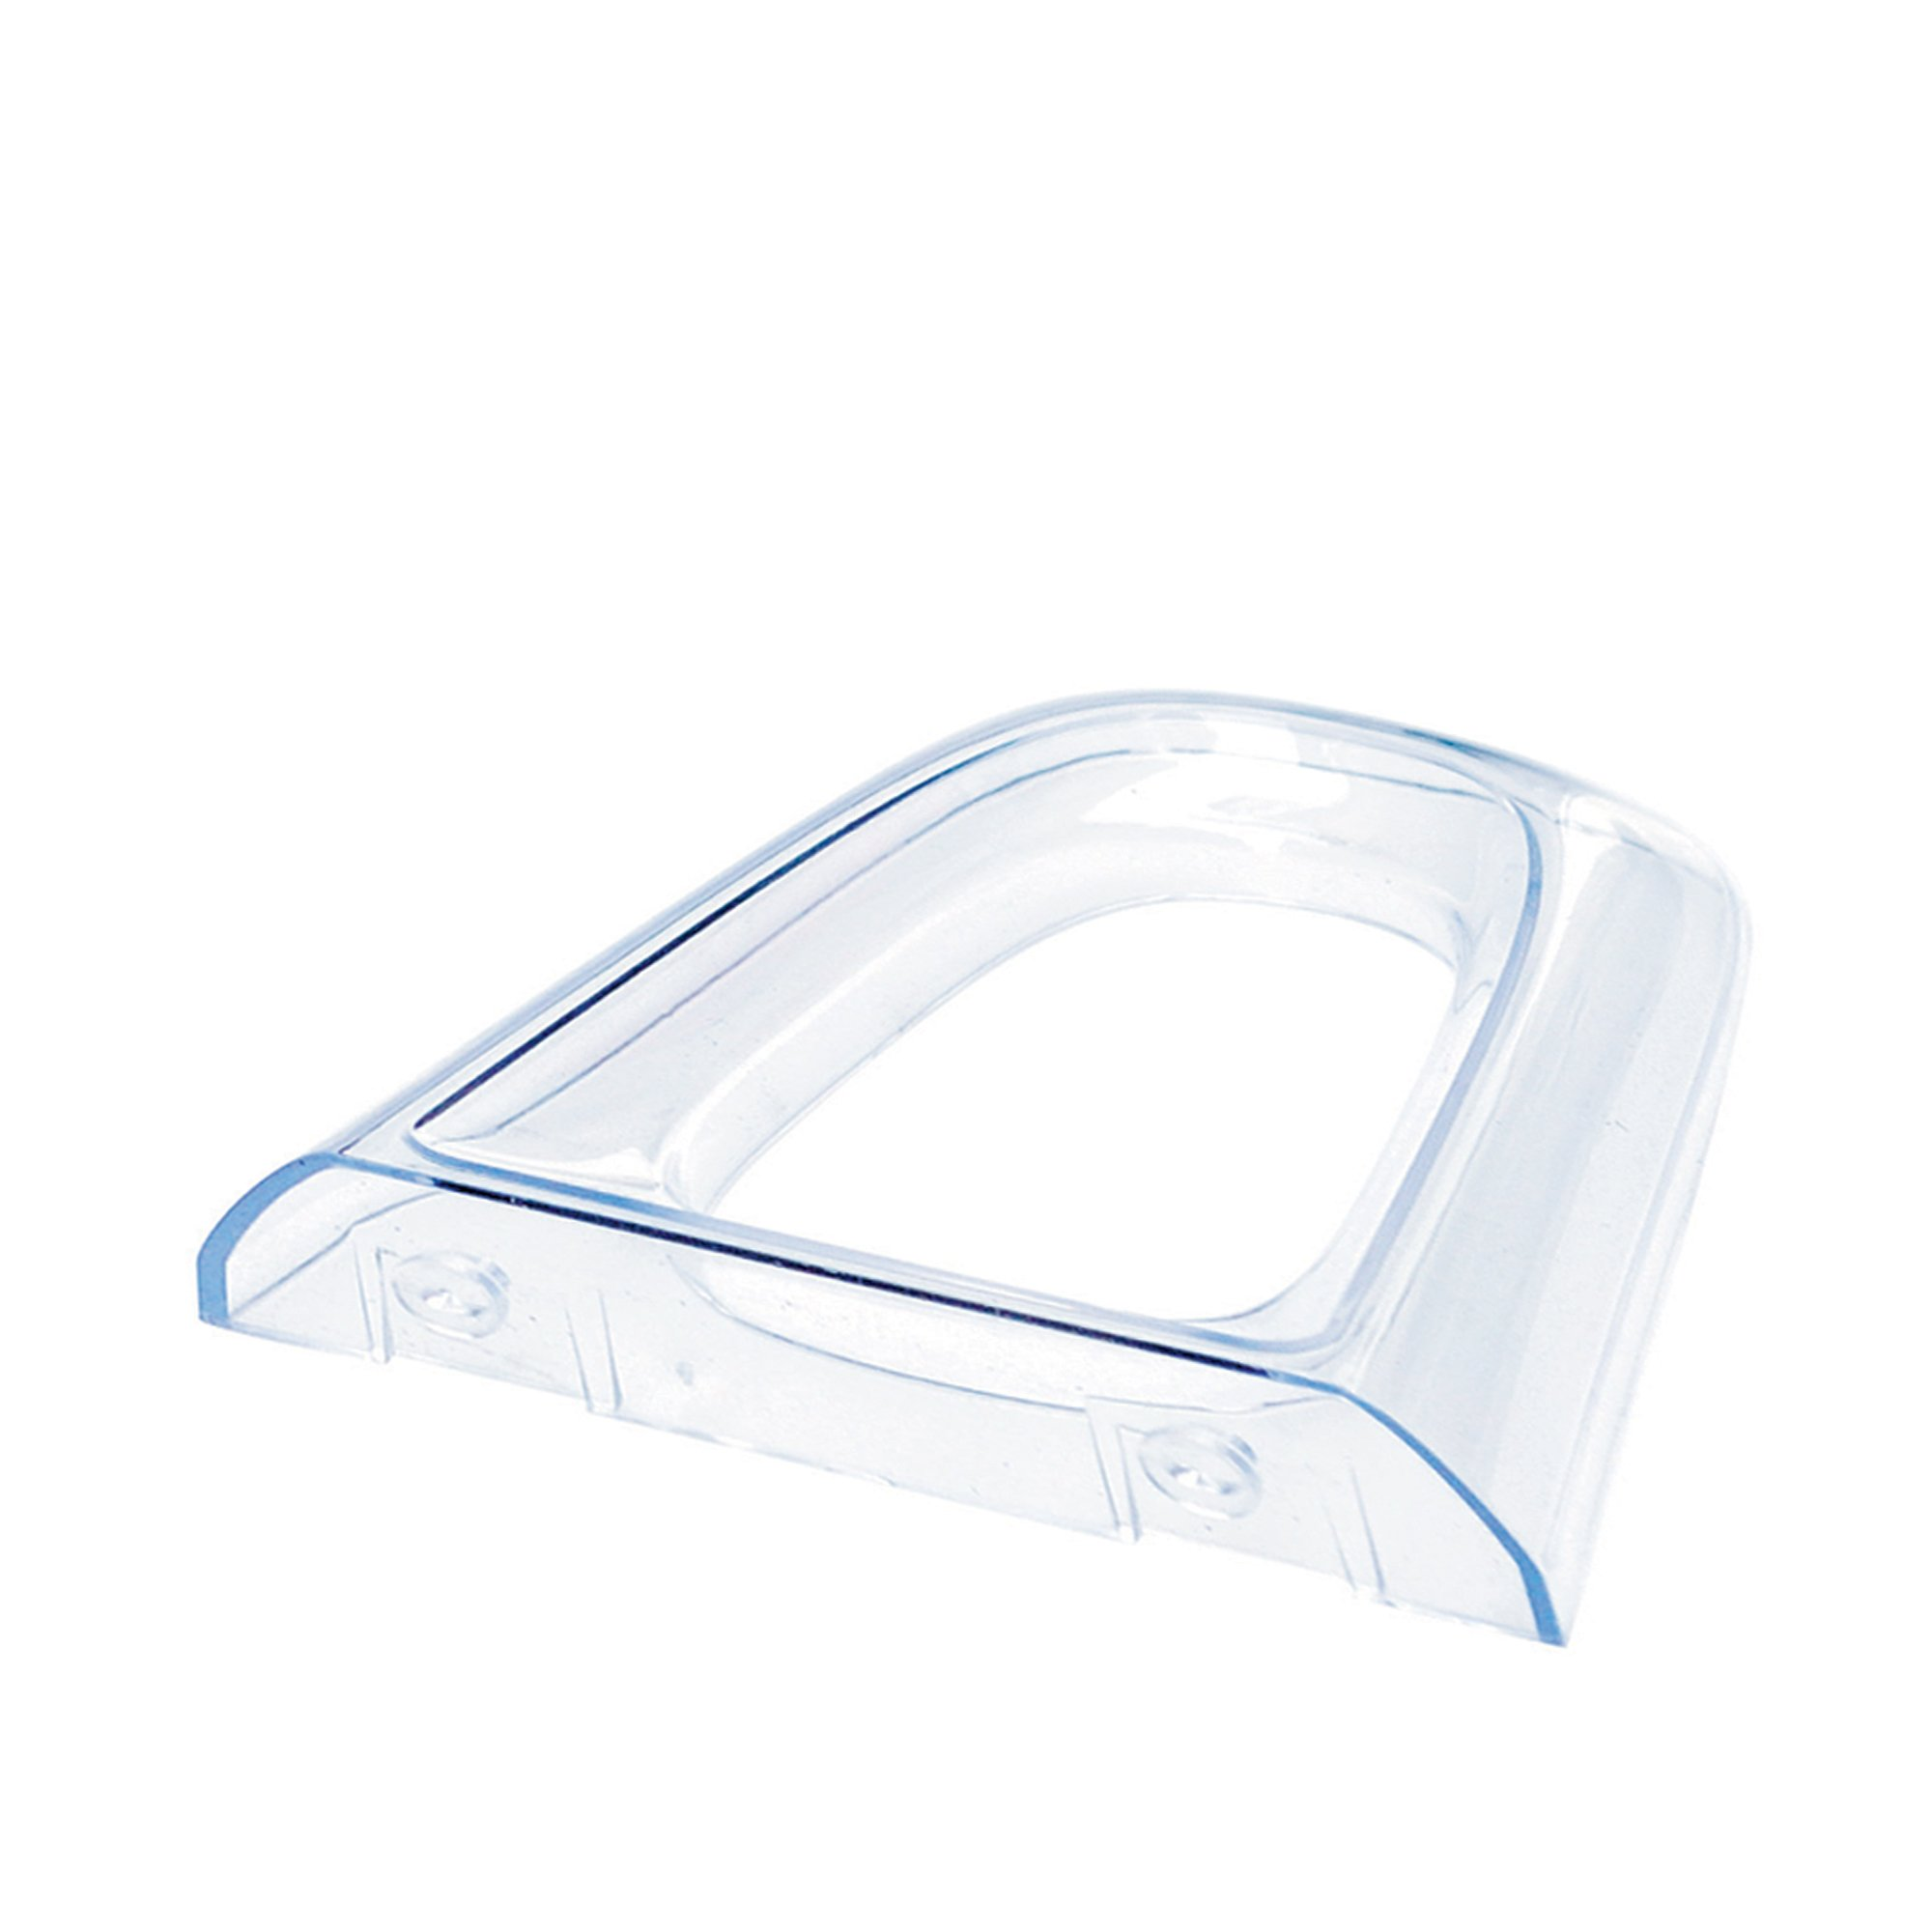 Deflecto Lic Loc Base or Wall Support, Clear (771701)